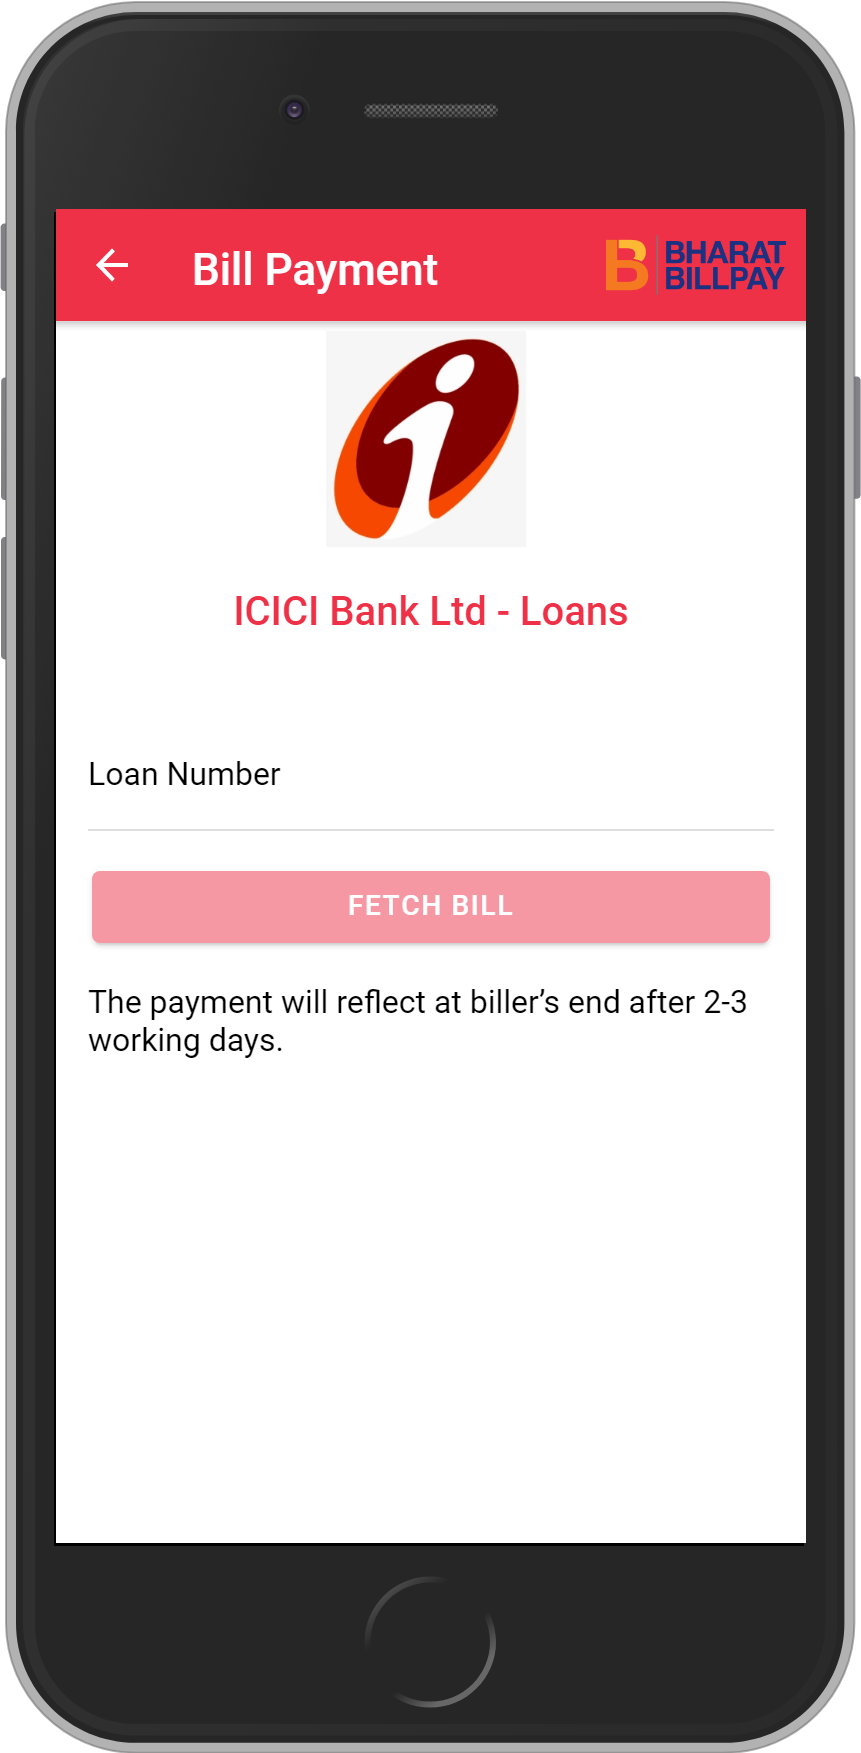 Get UNLIMITED <b>0.1%</b> CASHBACK on ICICI Bank Ltd – Loans Loan Payment.